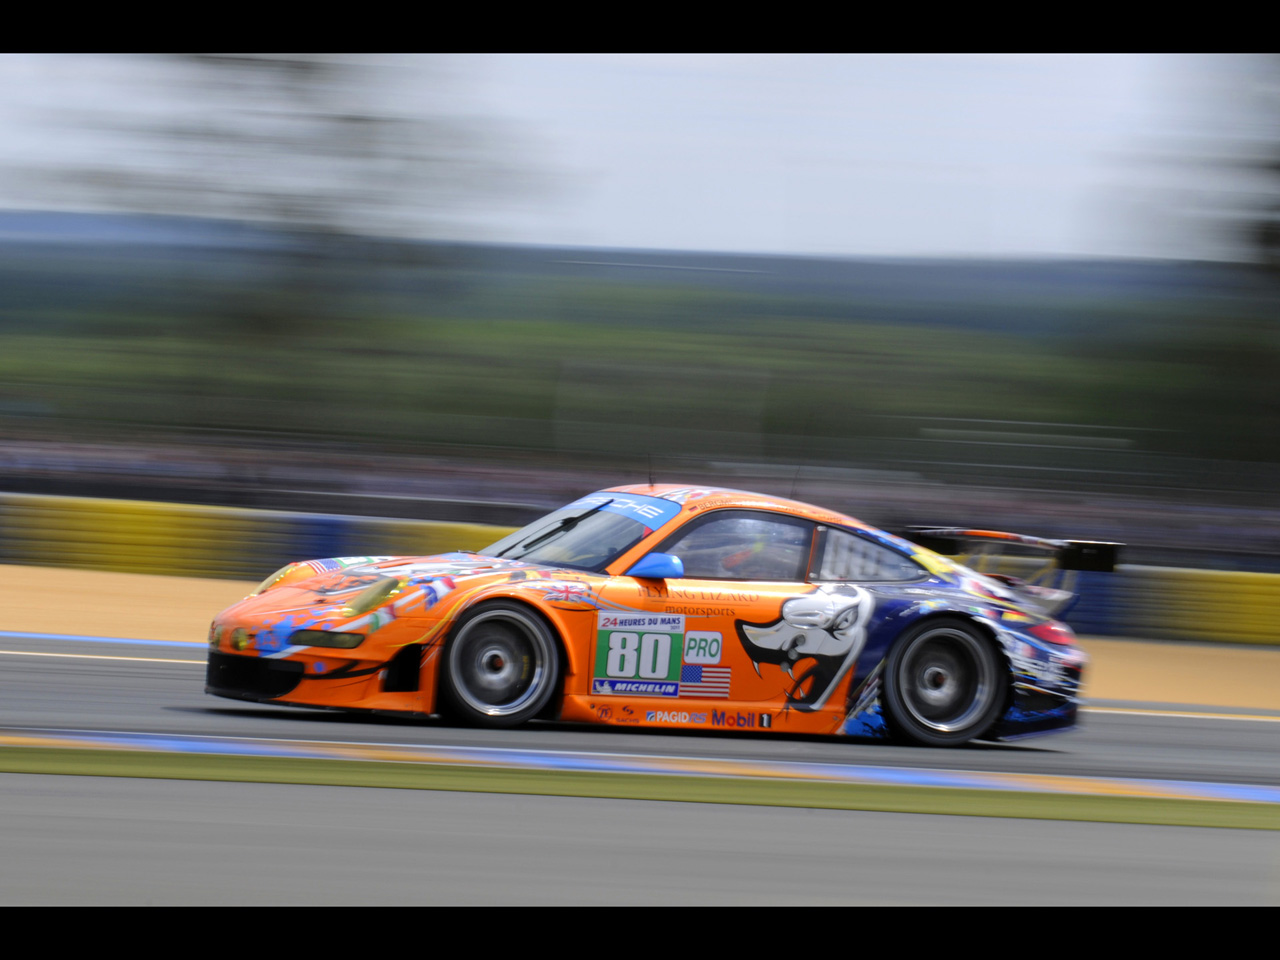 Porsche 911 Gt3 Rsr At Le Mans 2011 Luxury And Fast Cars